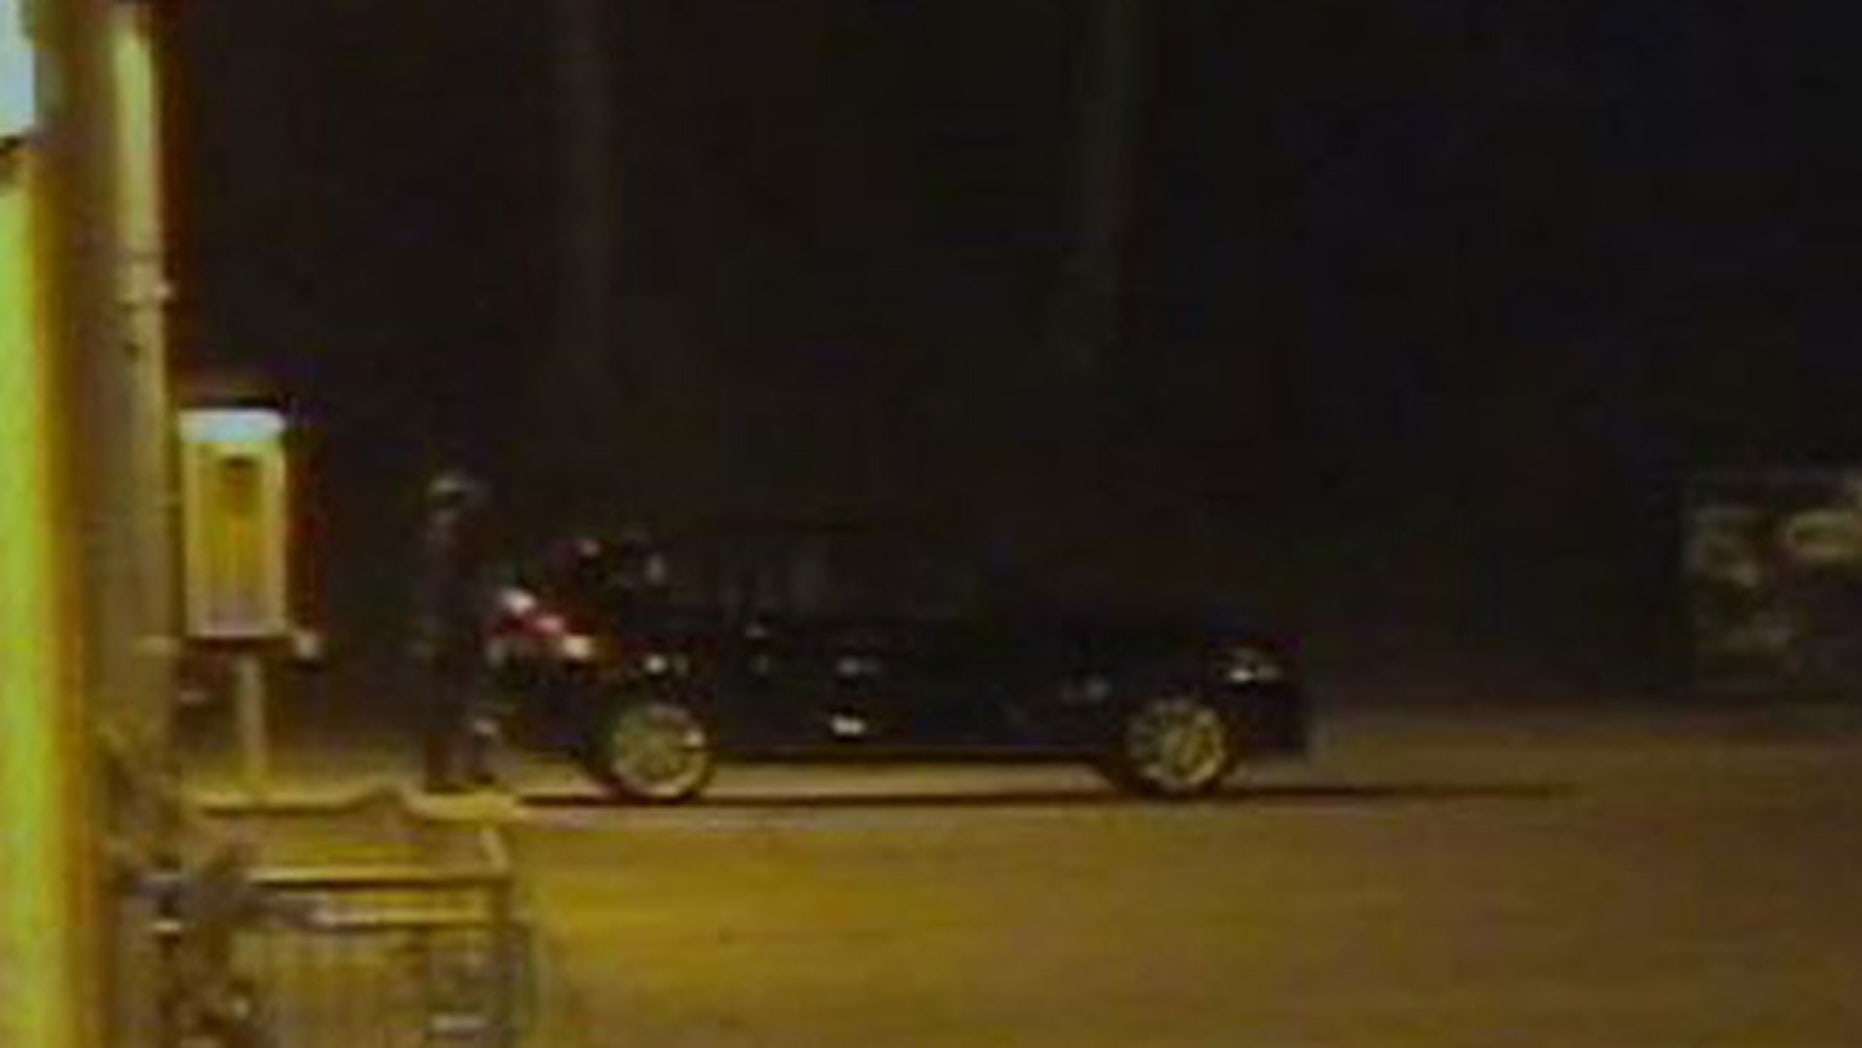 Surveillance images obtained by FOX25 show an unknown man near the Lincoln Stoddard Army Reserve Center, standing beside a dark BMW hatchback with sport rims.